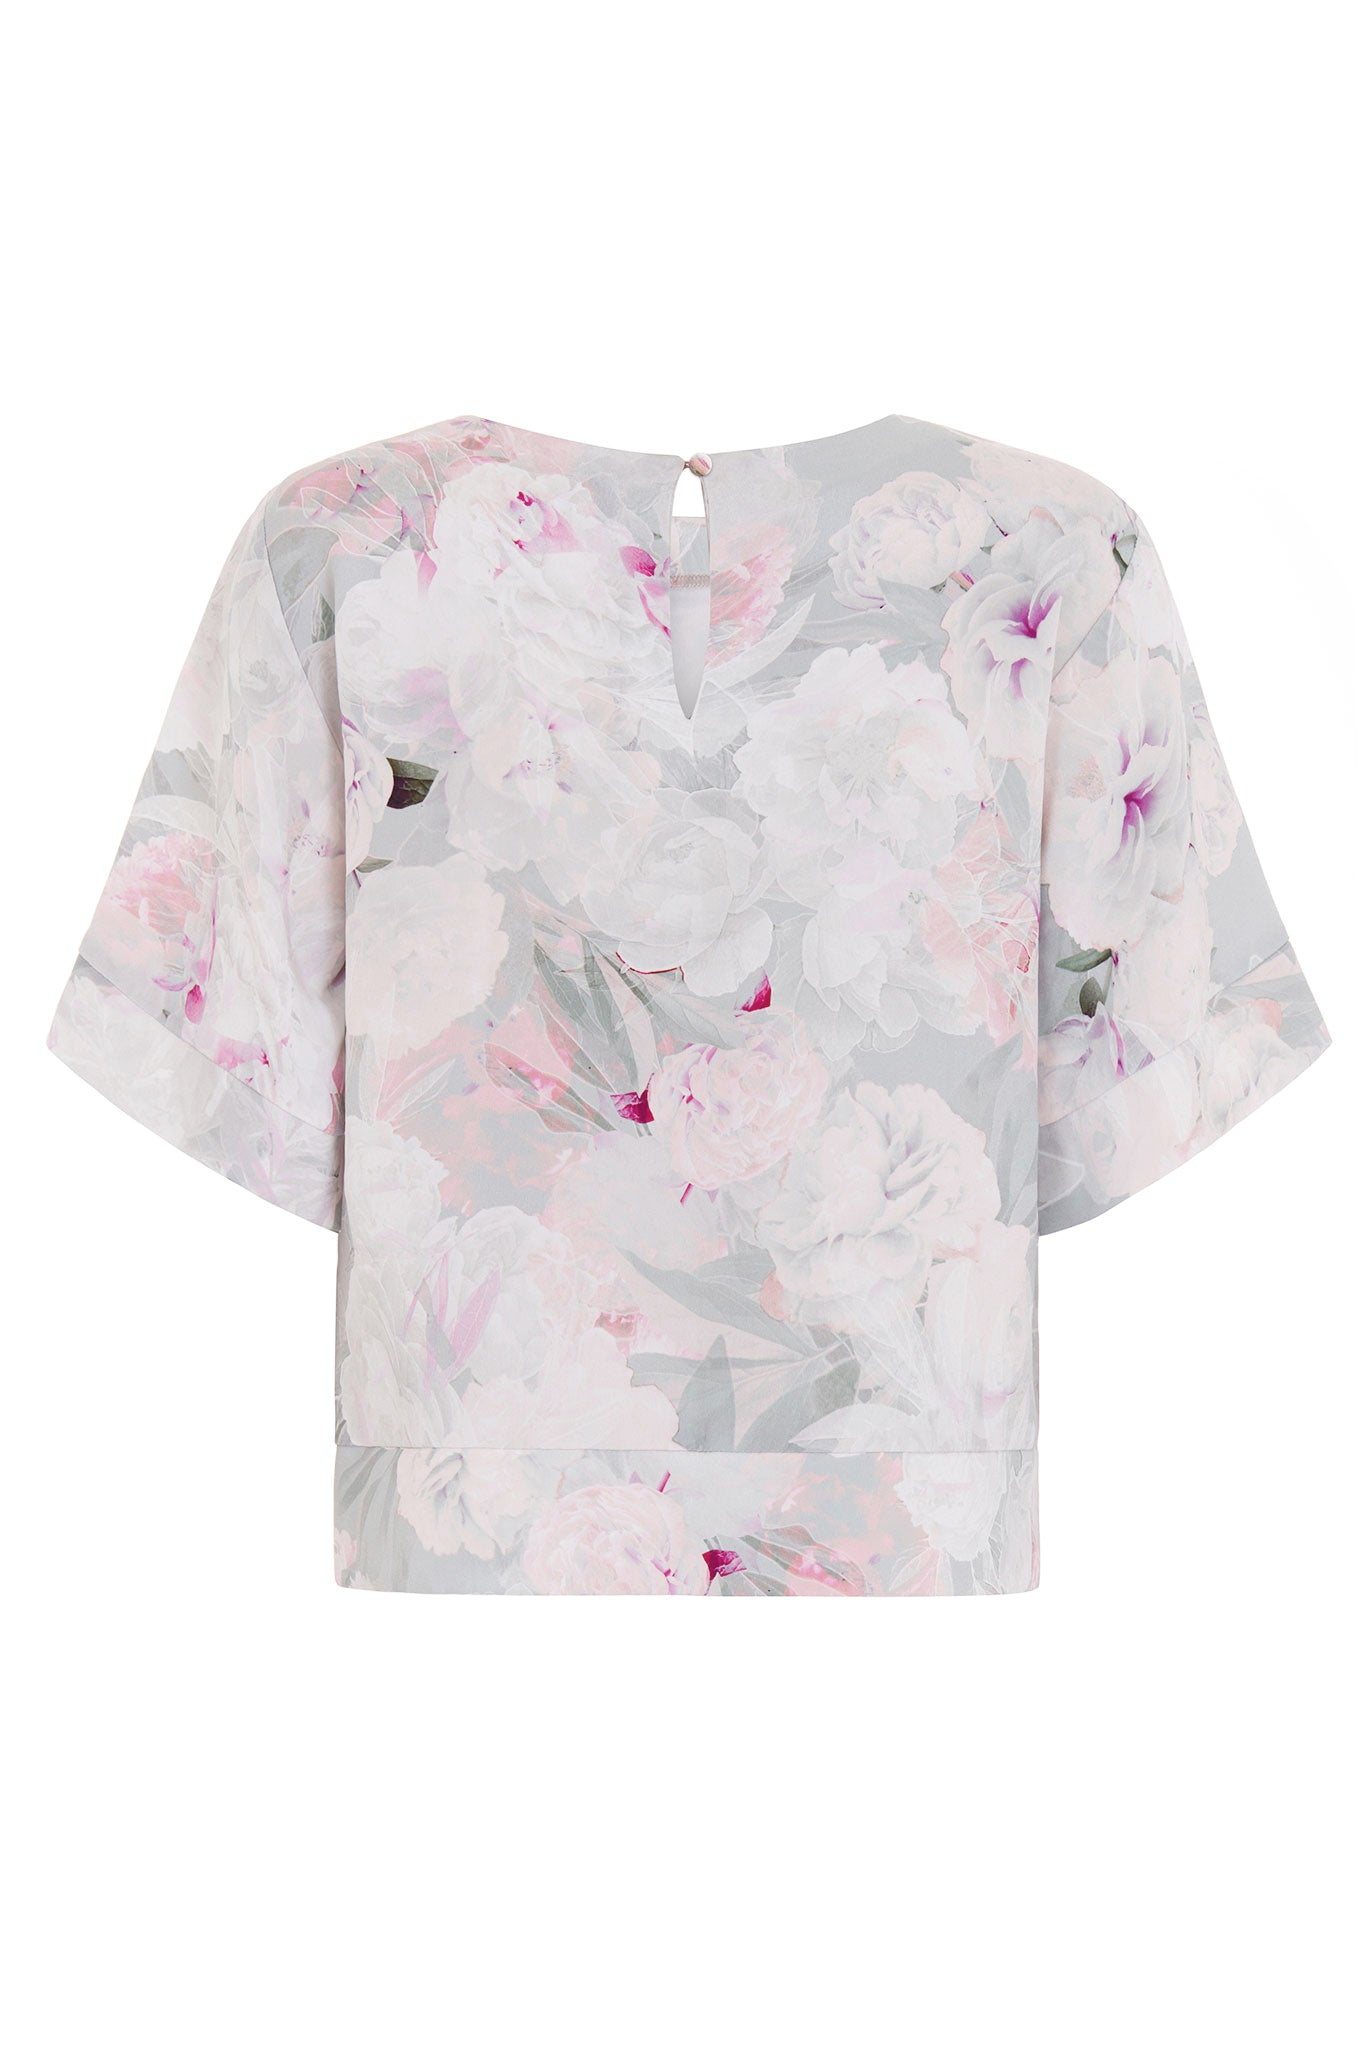 The Anna Silk Floral Printed Top